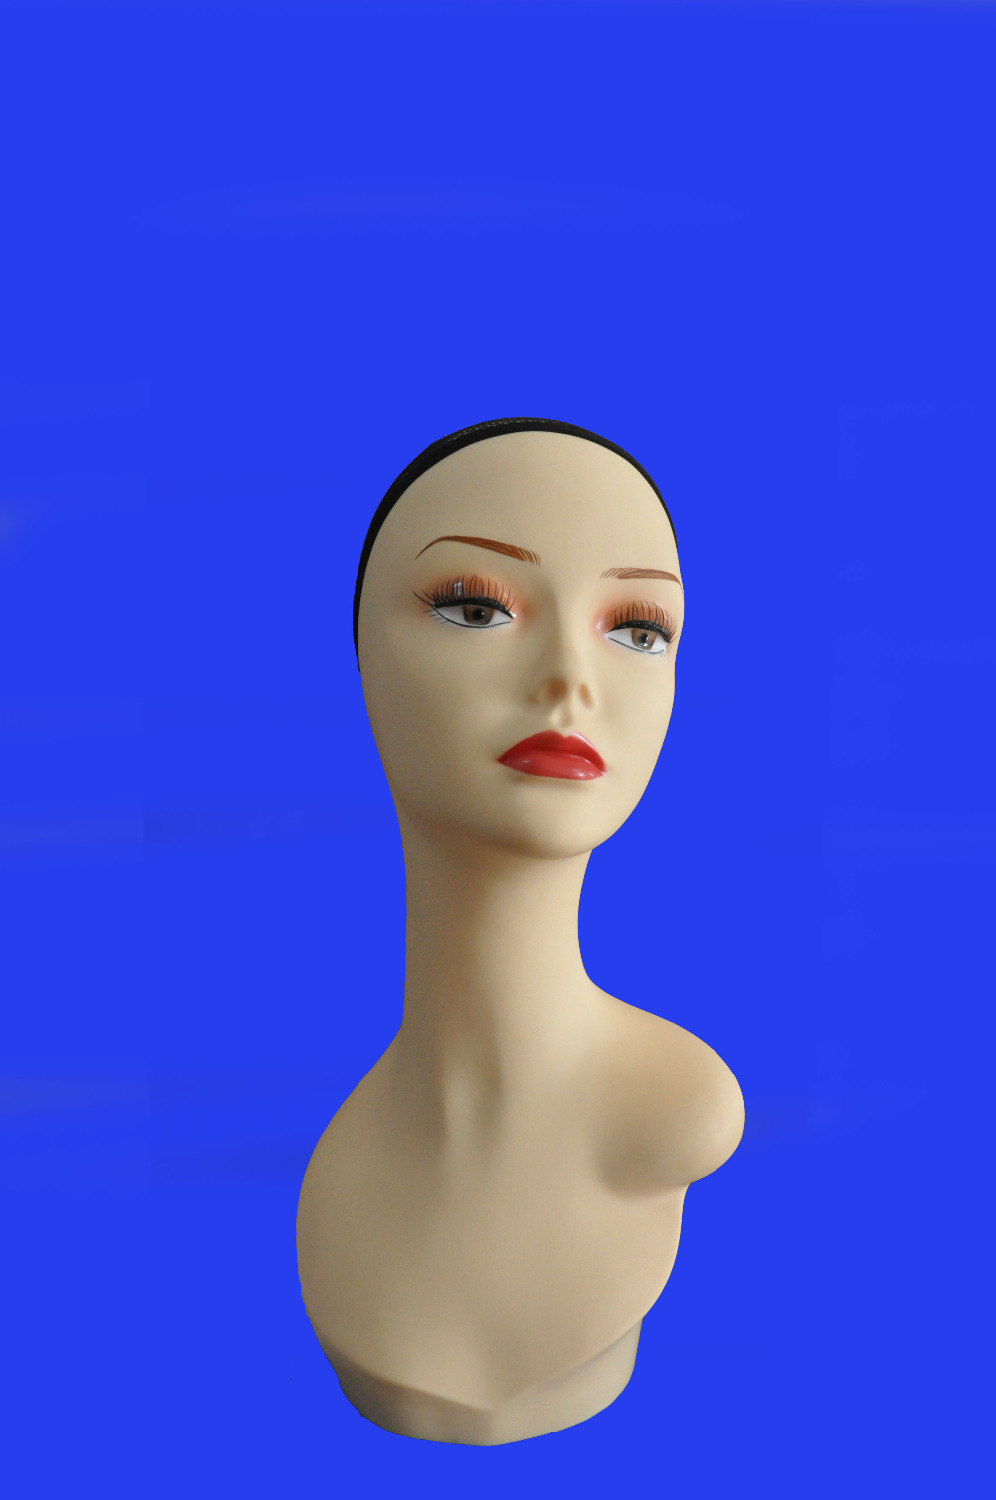 17 tall Plastic PVC mannequin manikin styrofoam head wig cap hat necklace display PZGD Yellow Color